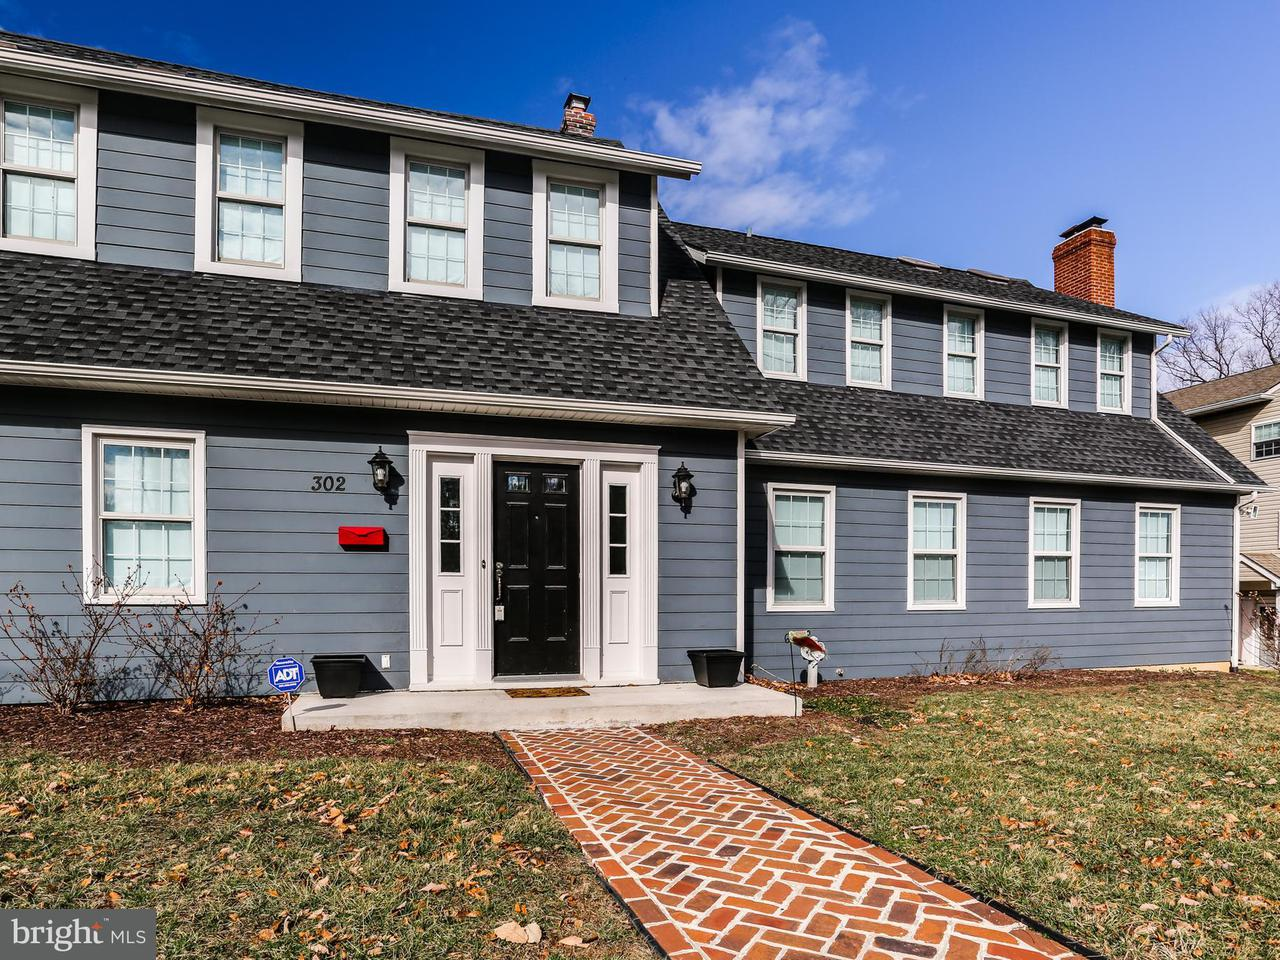 Single Family Home for Sale at 302 Chestnut Road 302 Chestnut Road Linthicum Heights, Maryland 21090 United States